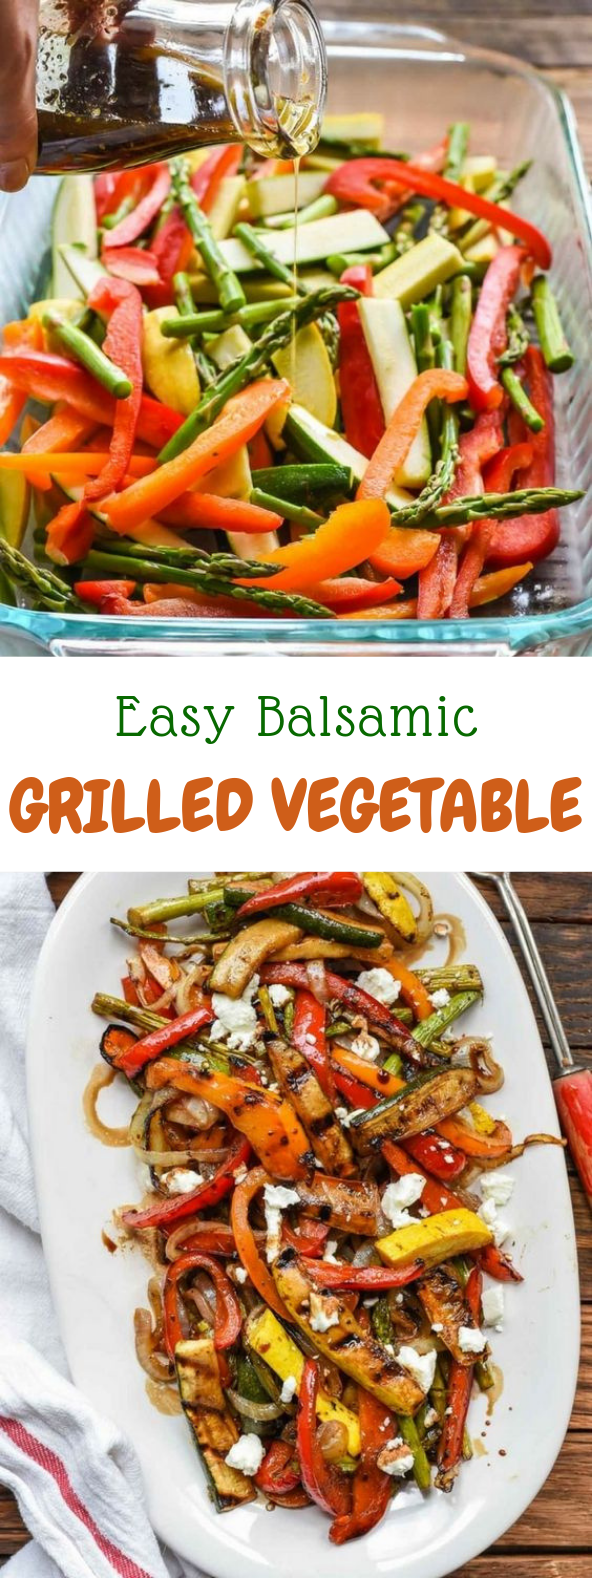 Easy Balsamic Grilled Vegetables with Goat Cheese #Vegetable #Vegetarian